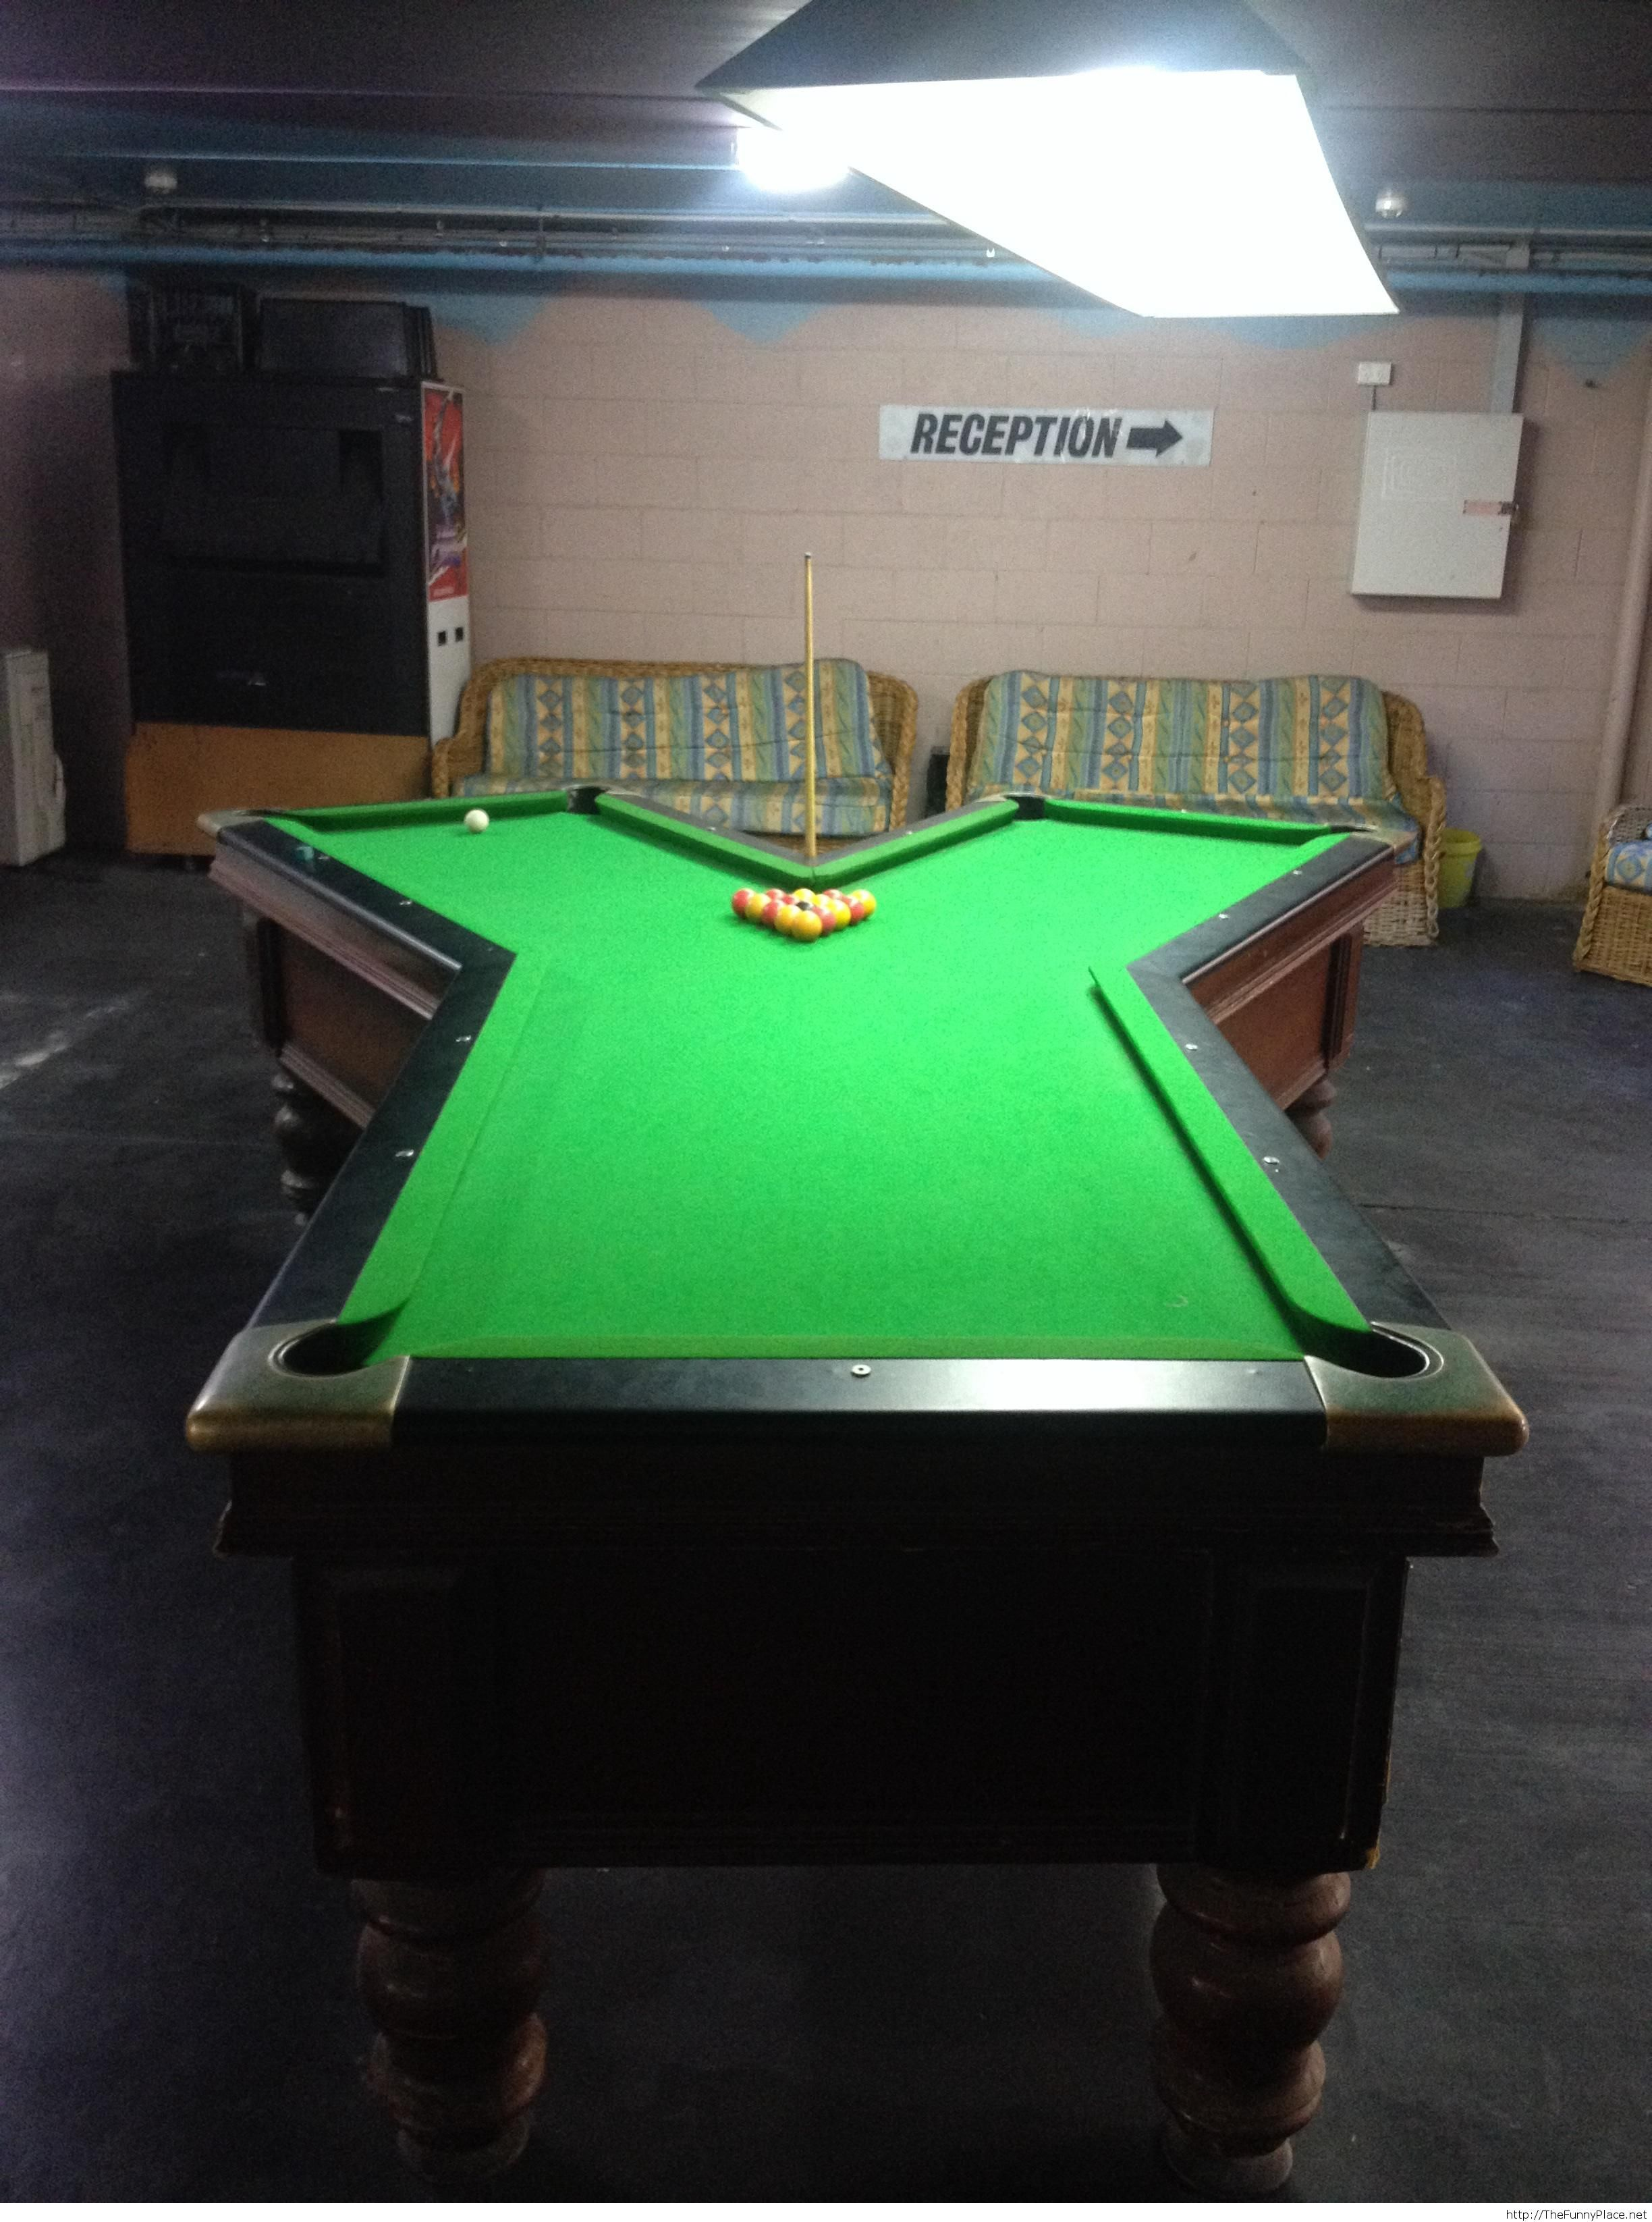 Quite an awesome pool table